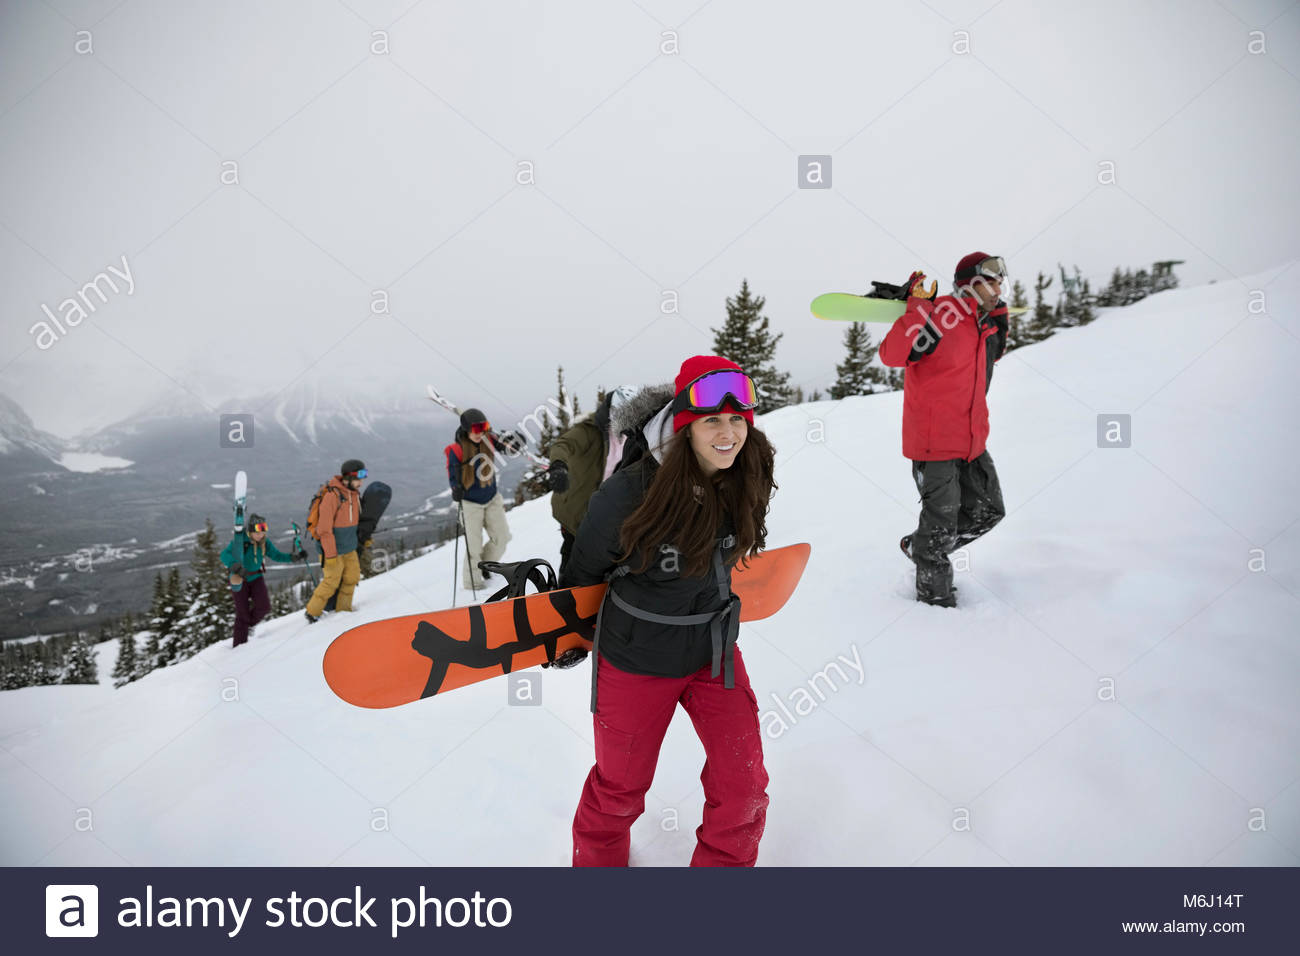 Skiers and snowboarders hiking snowy hill - Stock Image